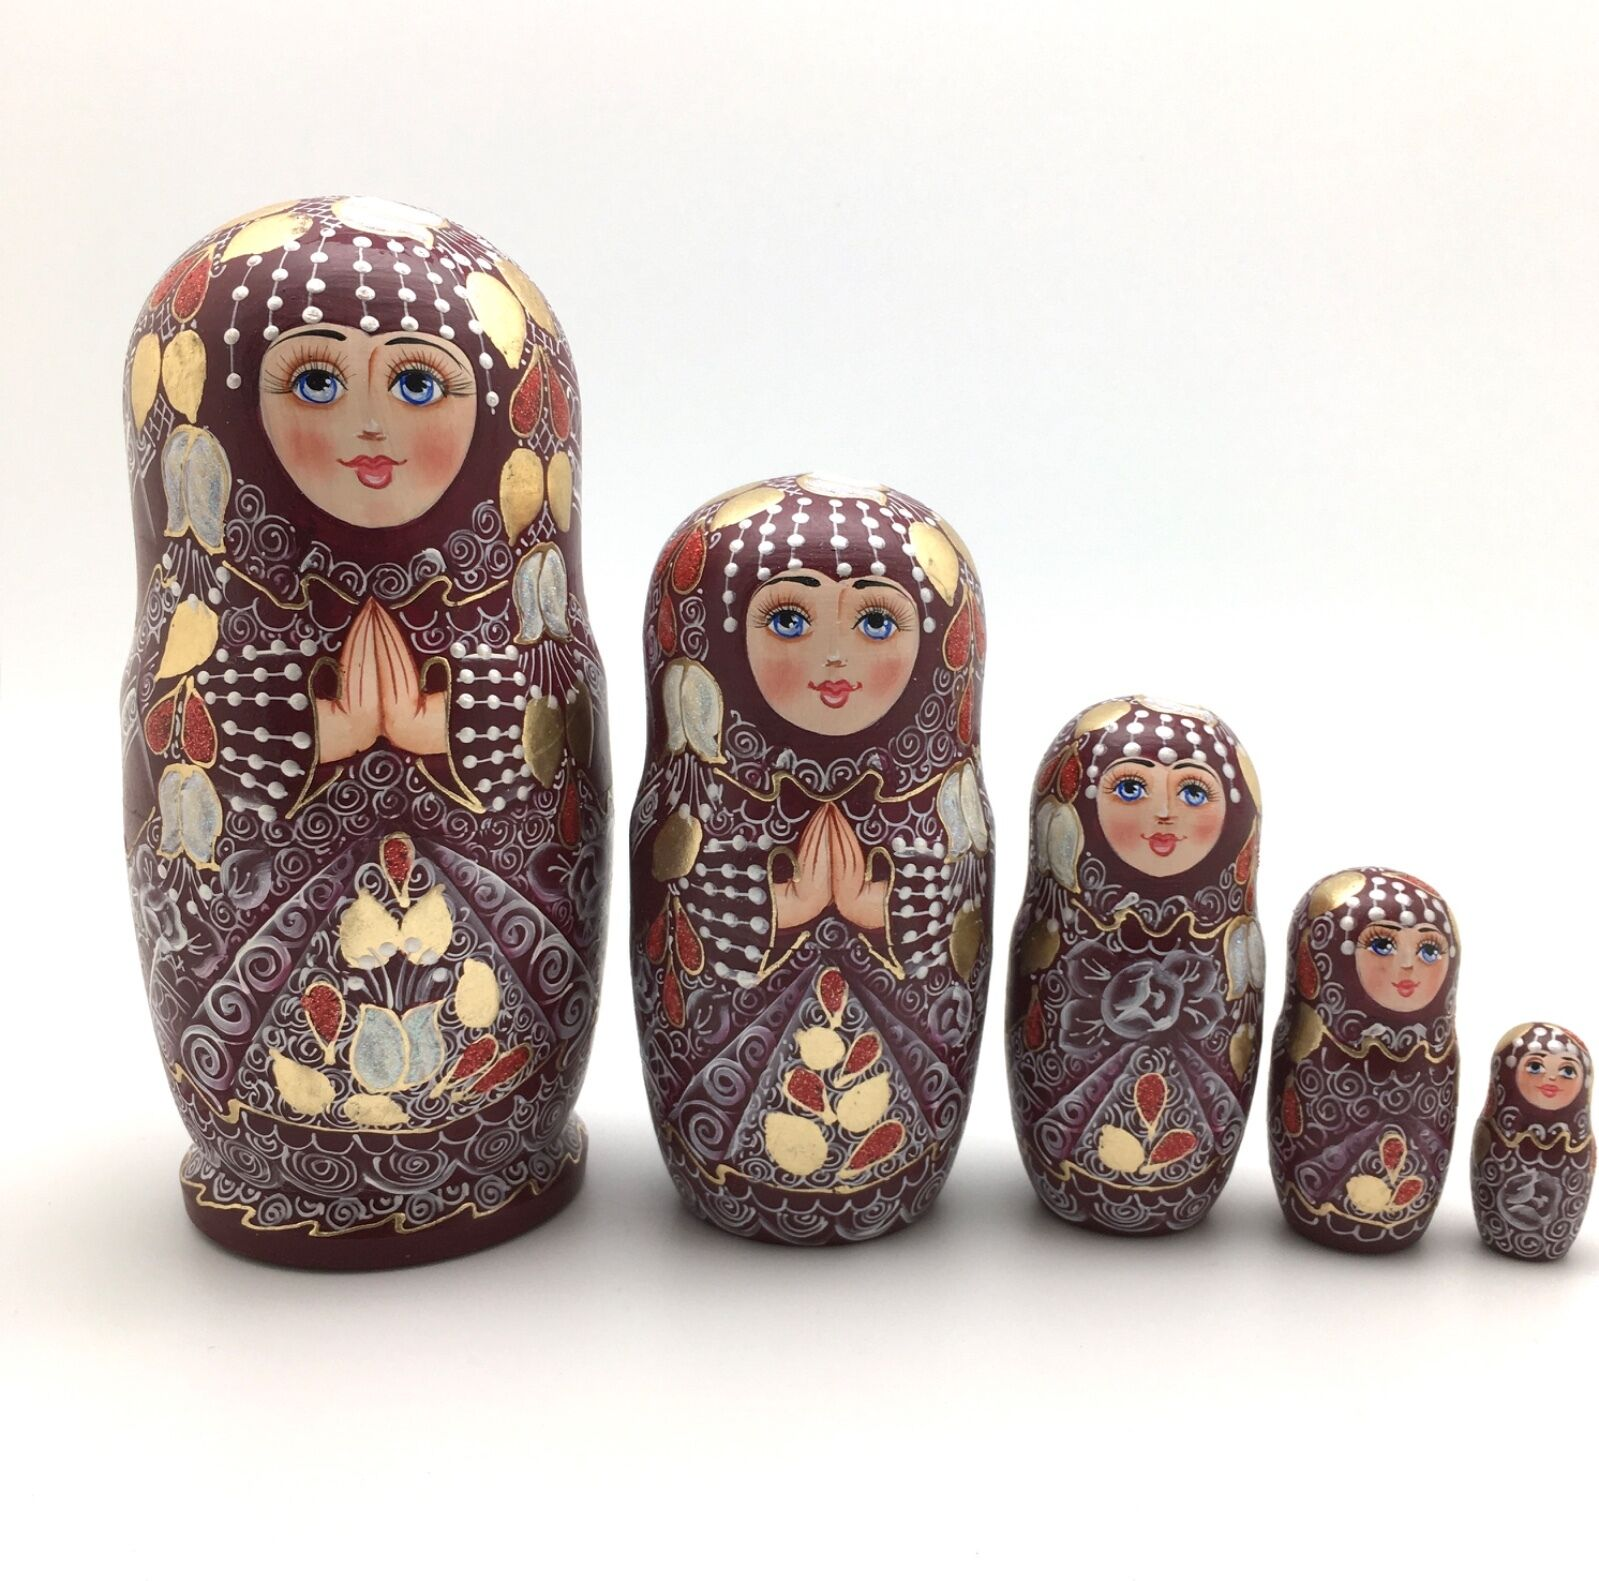 Russian Beauty Nesting bambola set He Painted Signed  Artlavoro  migliore offerta